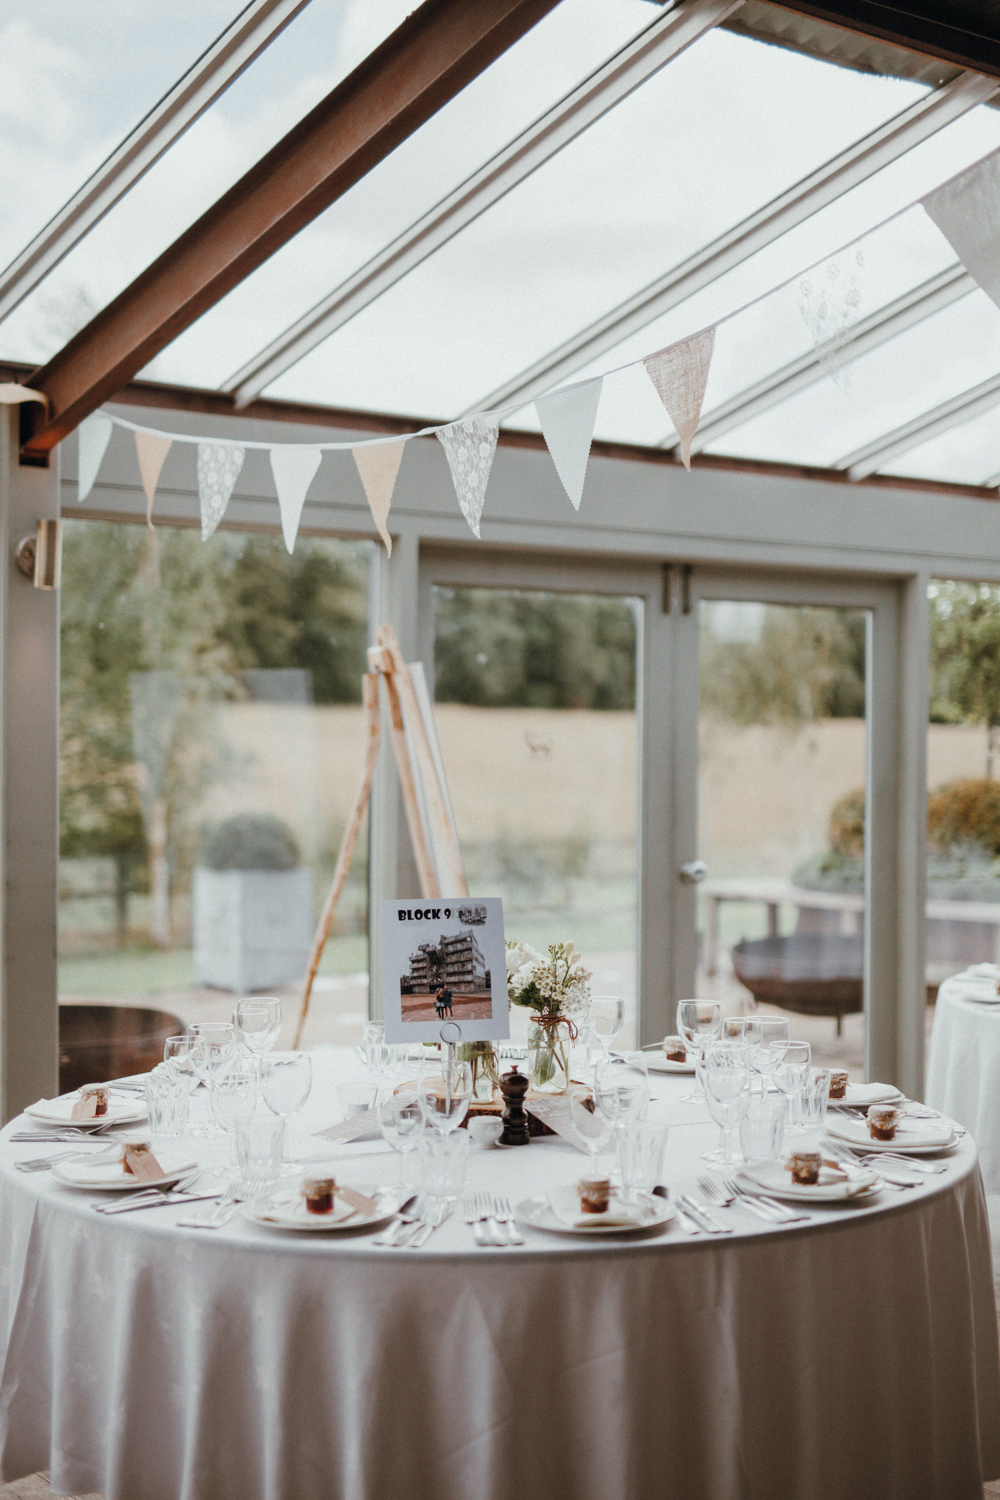 The venue felt very inviting and light filled, the tables were decorated with couple's pics